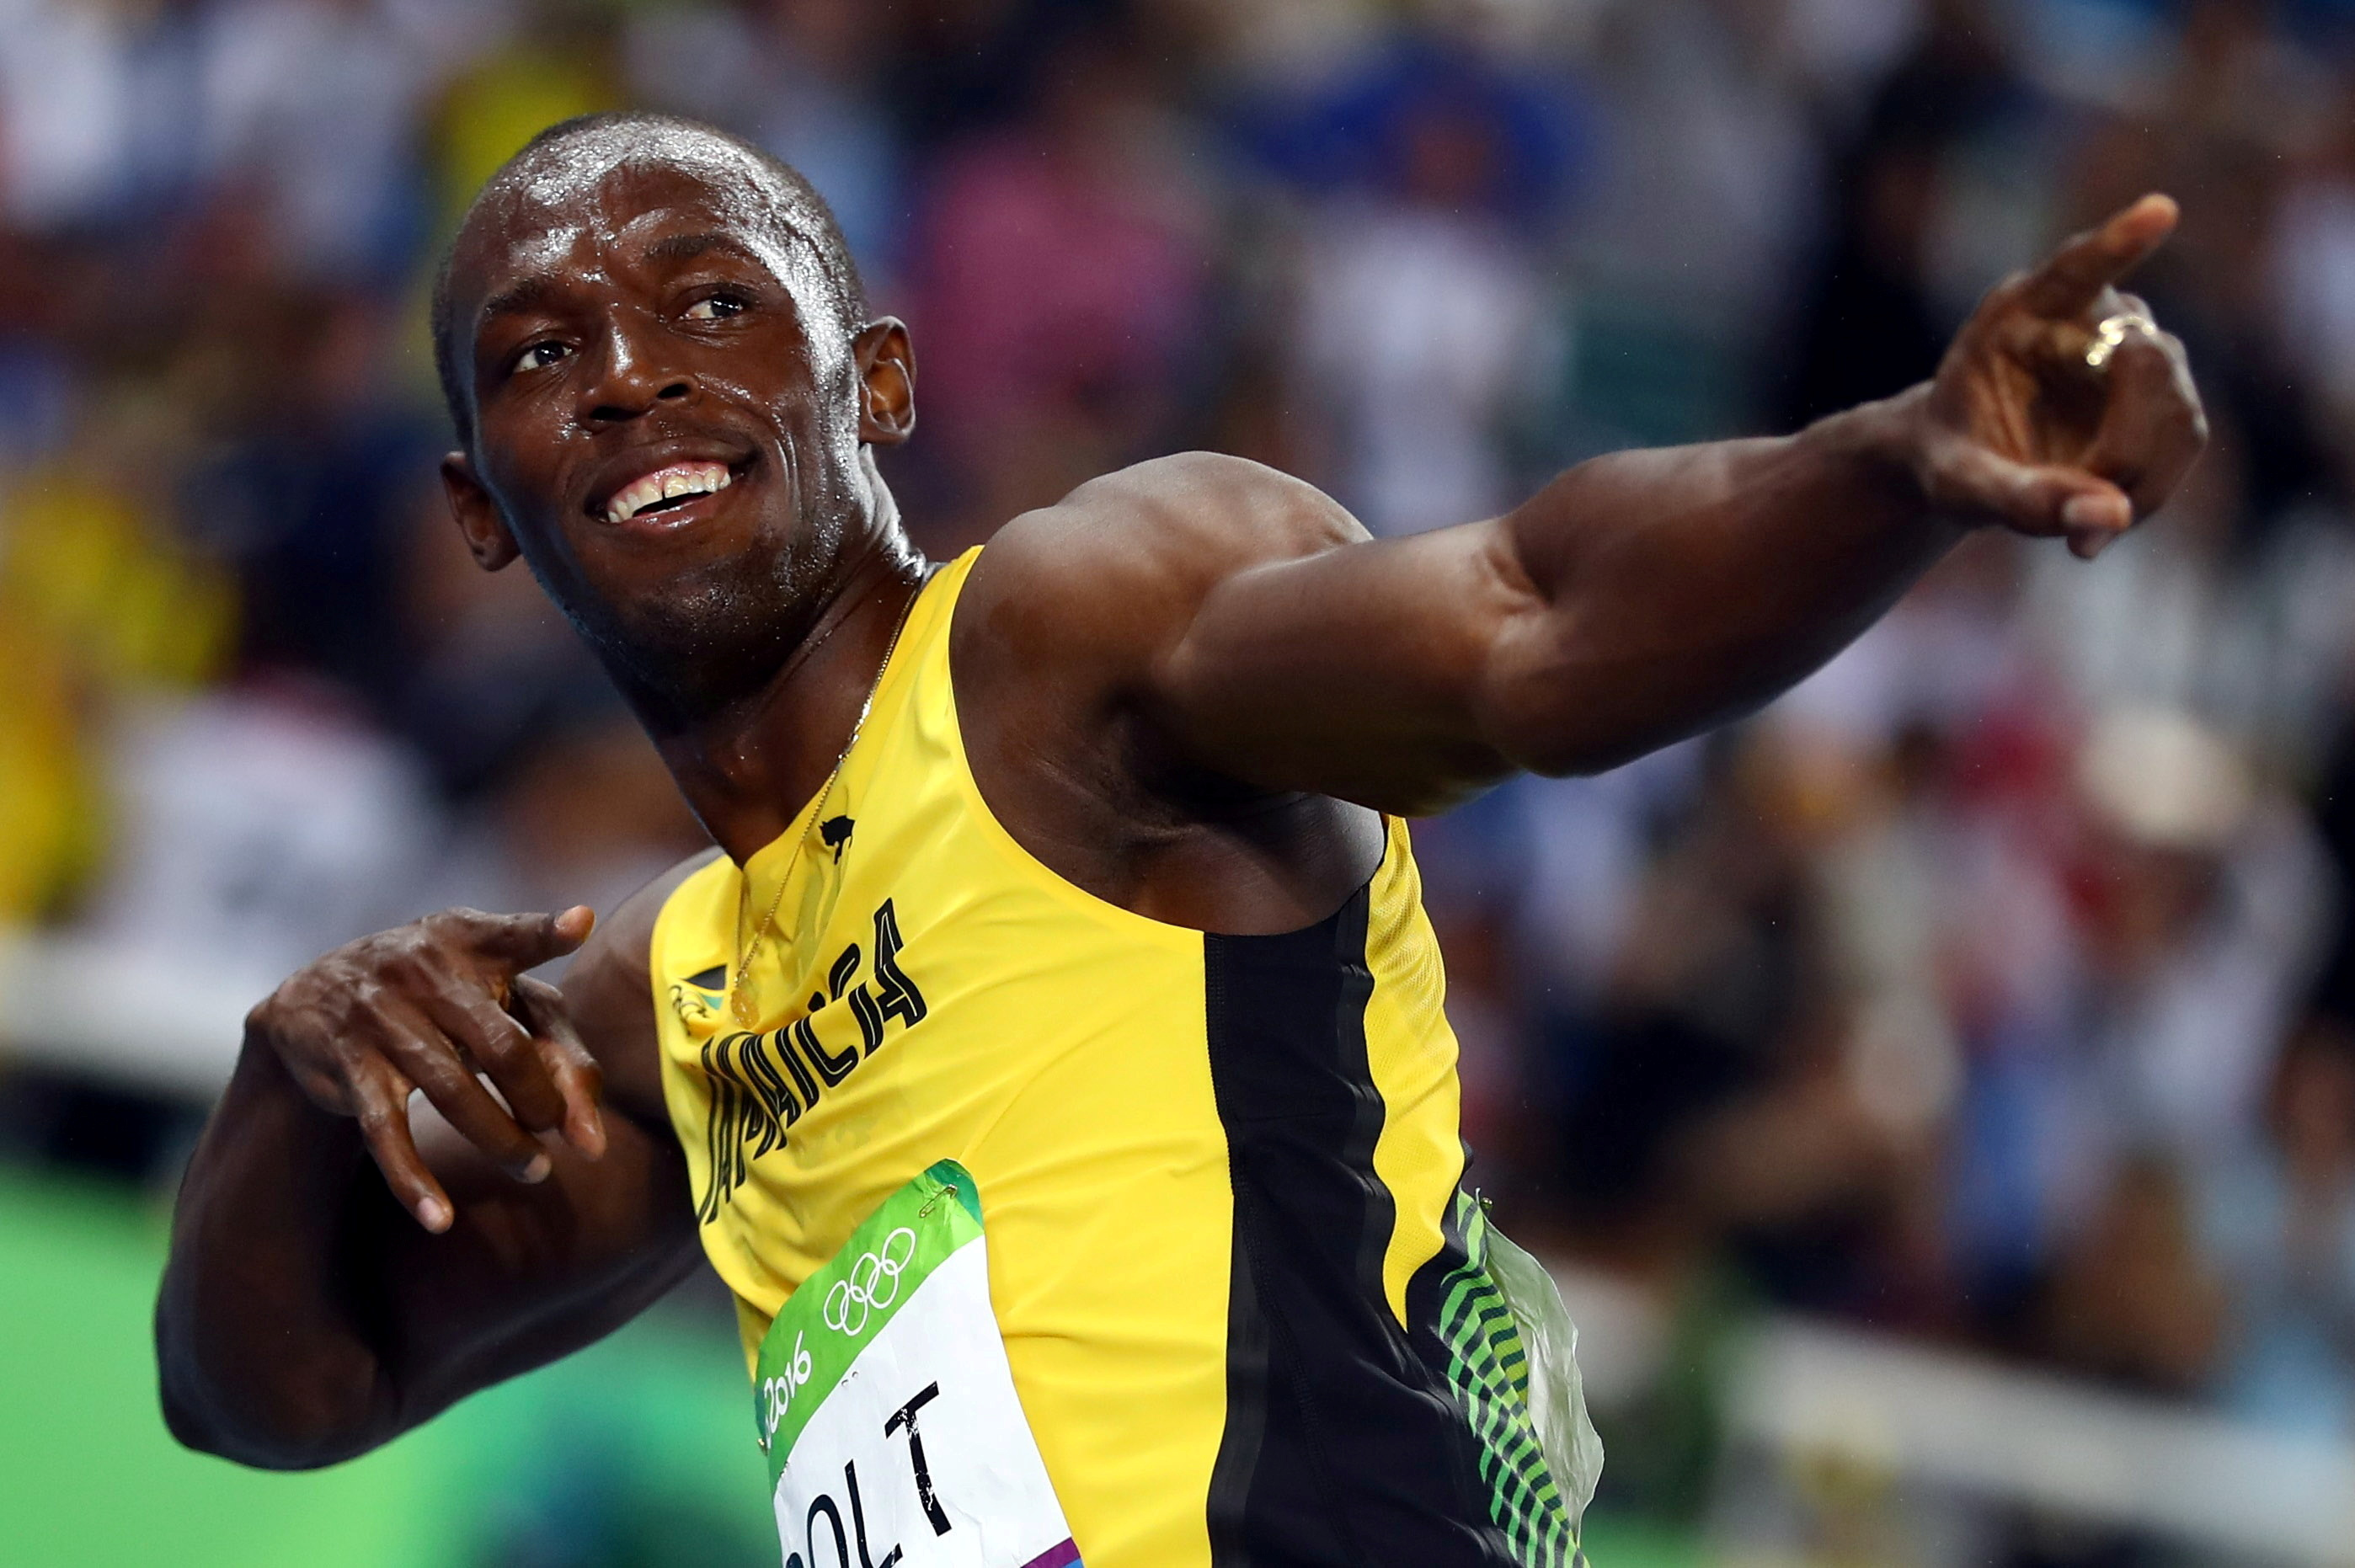 Athletics-Who can fill the 'Bolt-hole'? | Reuters